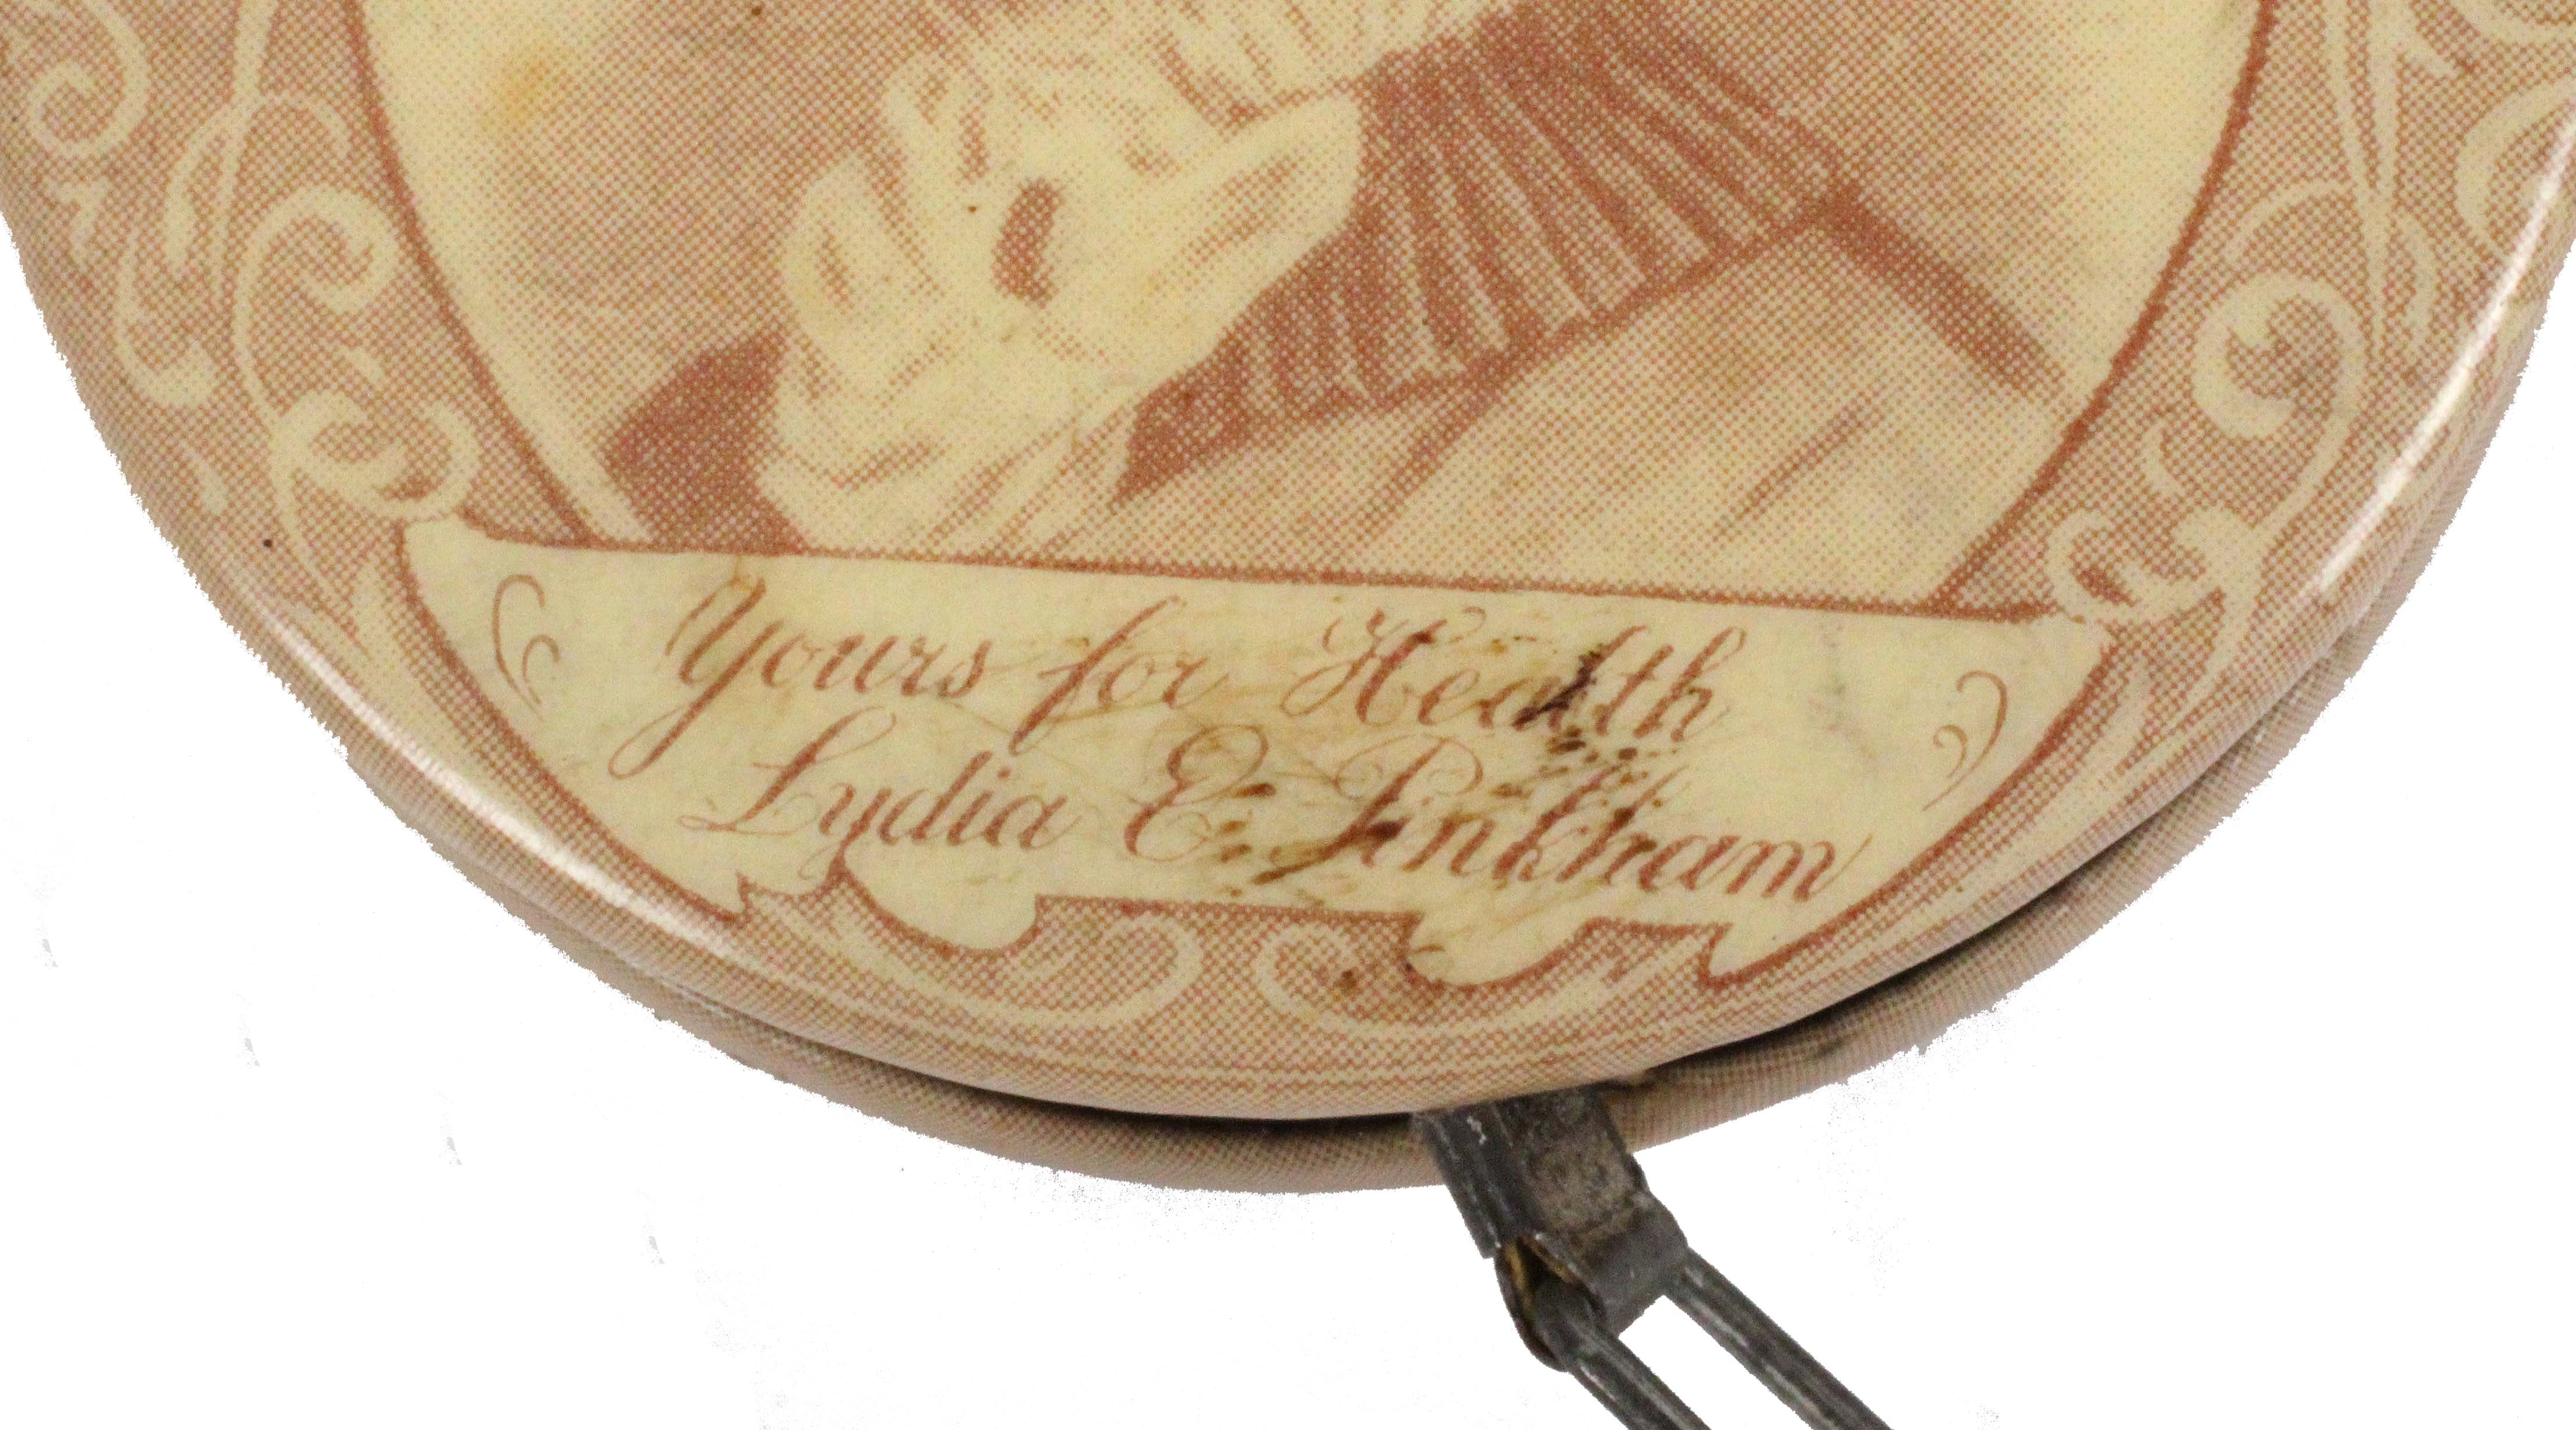 Four tape measures, comprising a circular retractable example advertising Lydia E. Pinkmans - Image 3 of 3